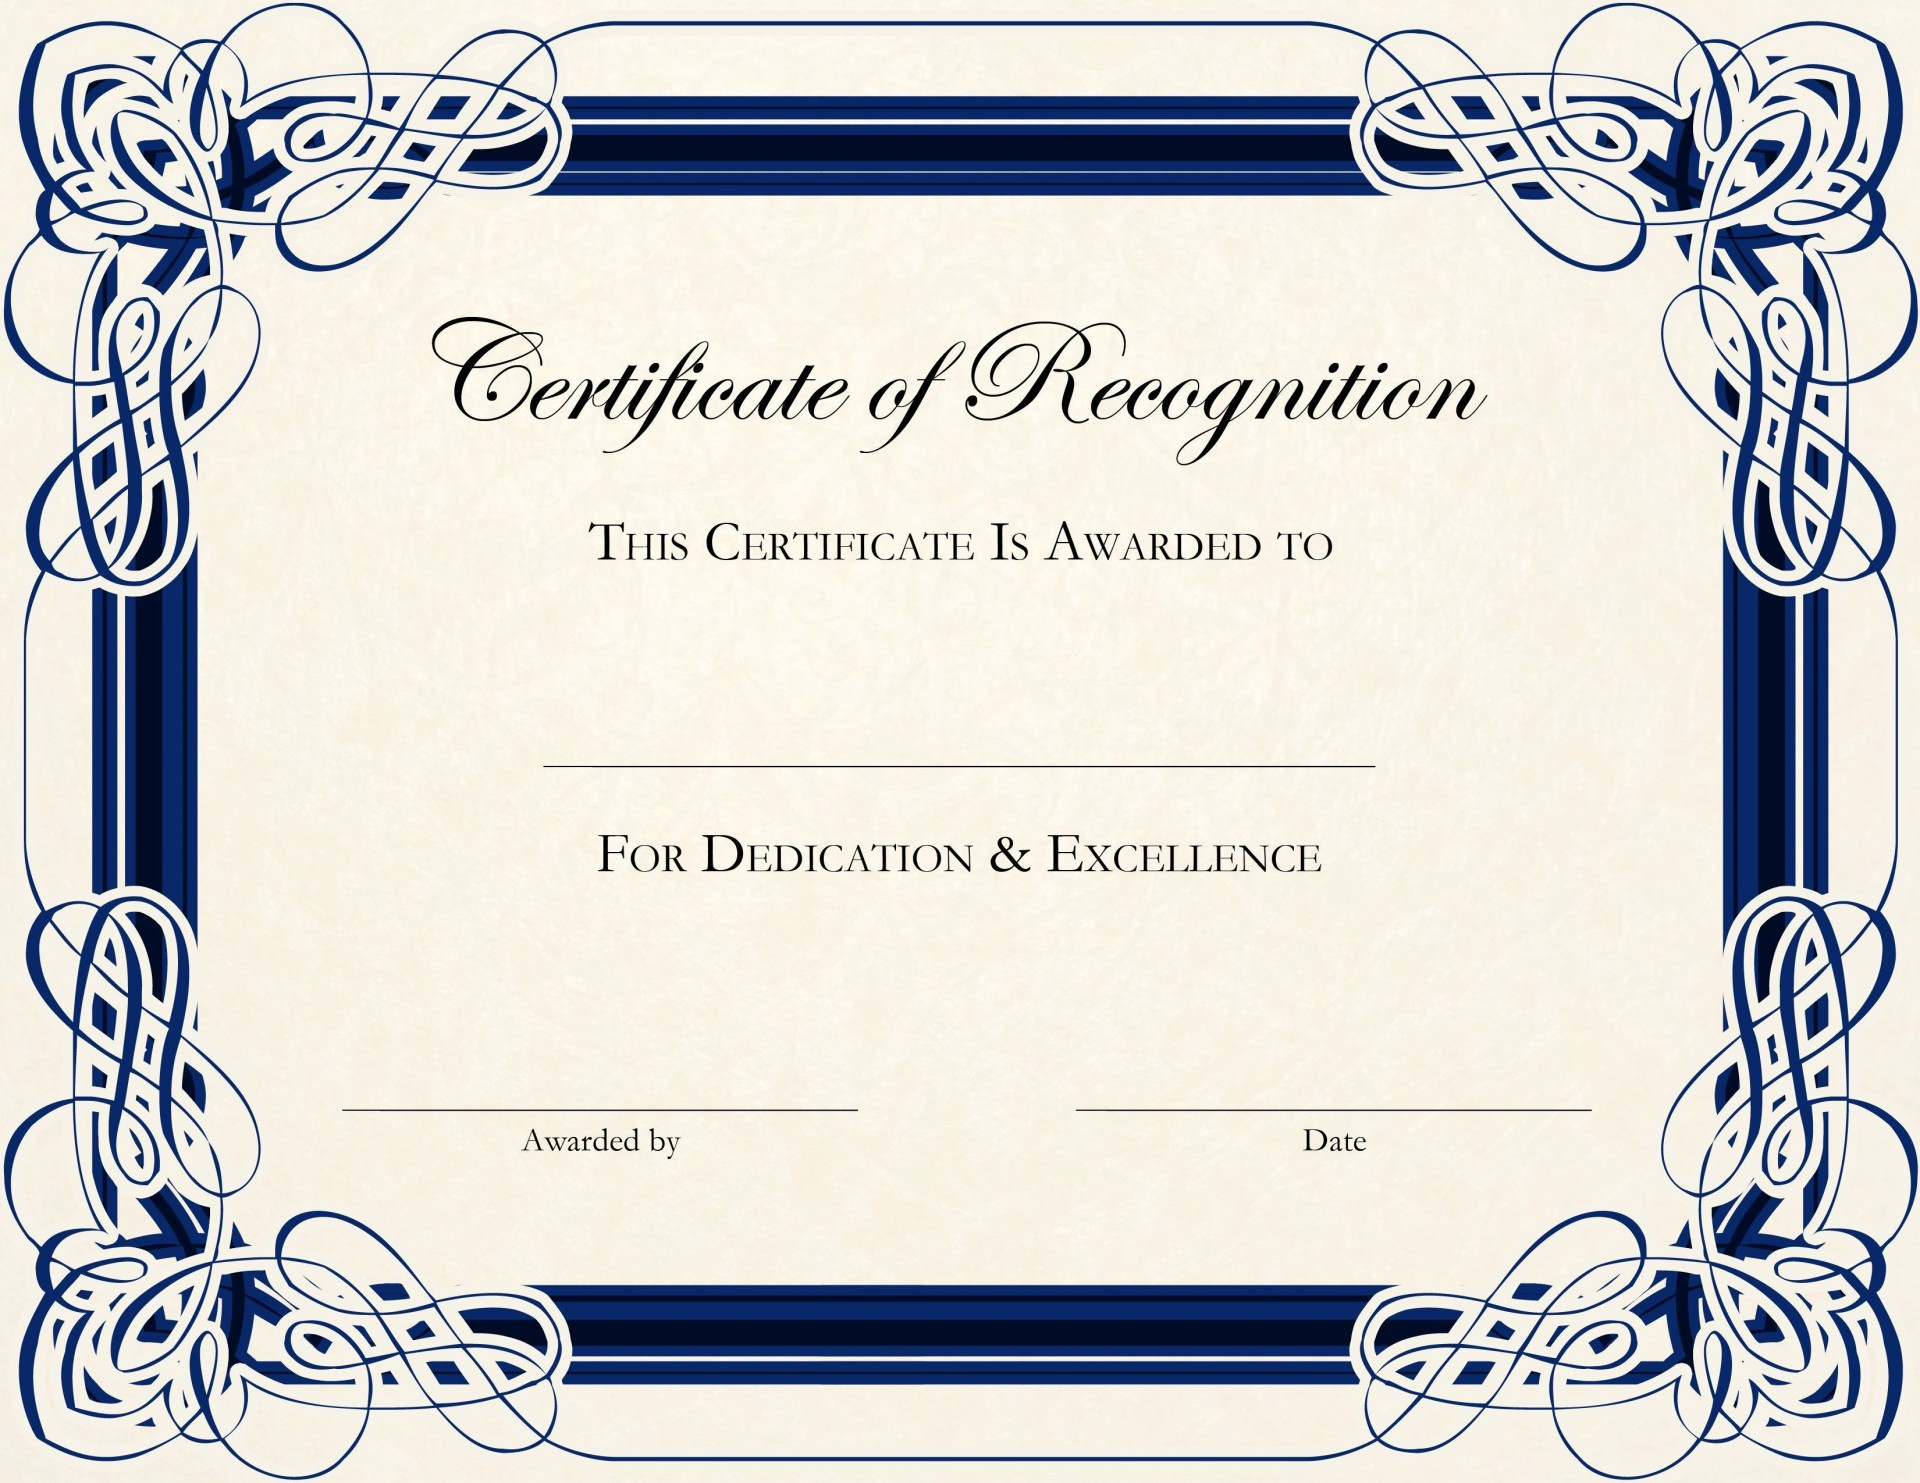 002 Stunning Certificate Of Recognition Template Word Highest Quality  Award Microsoft Free1920